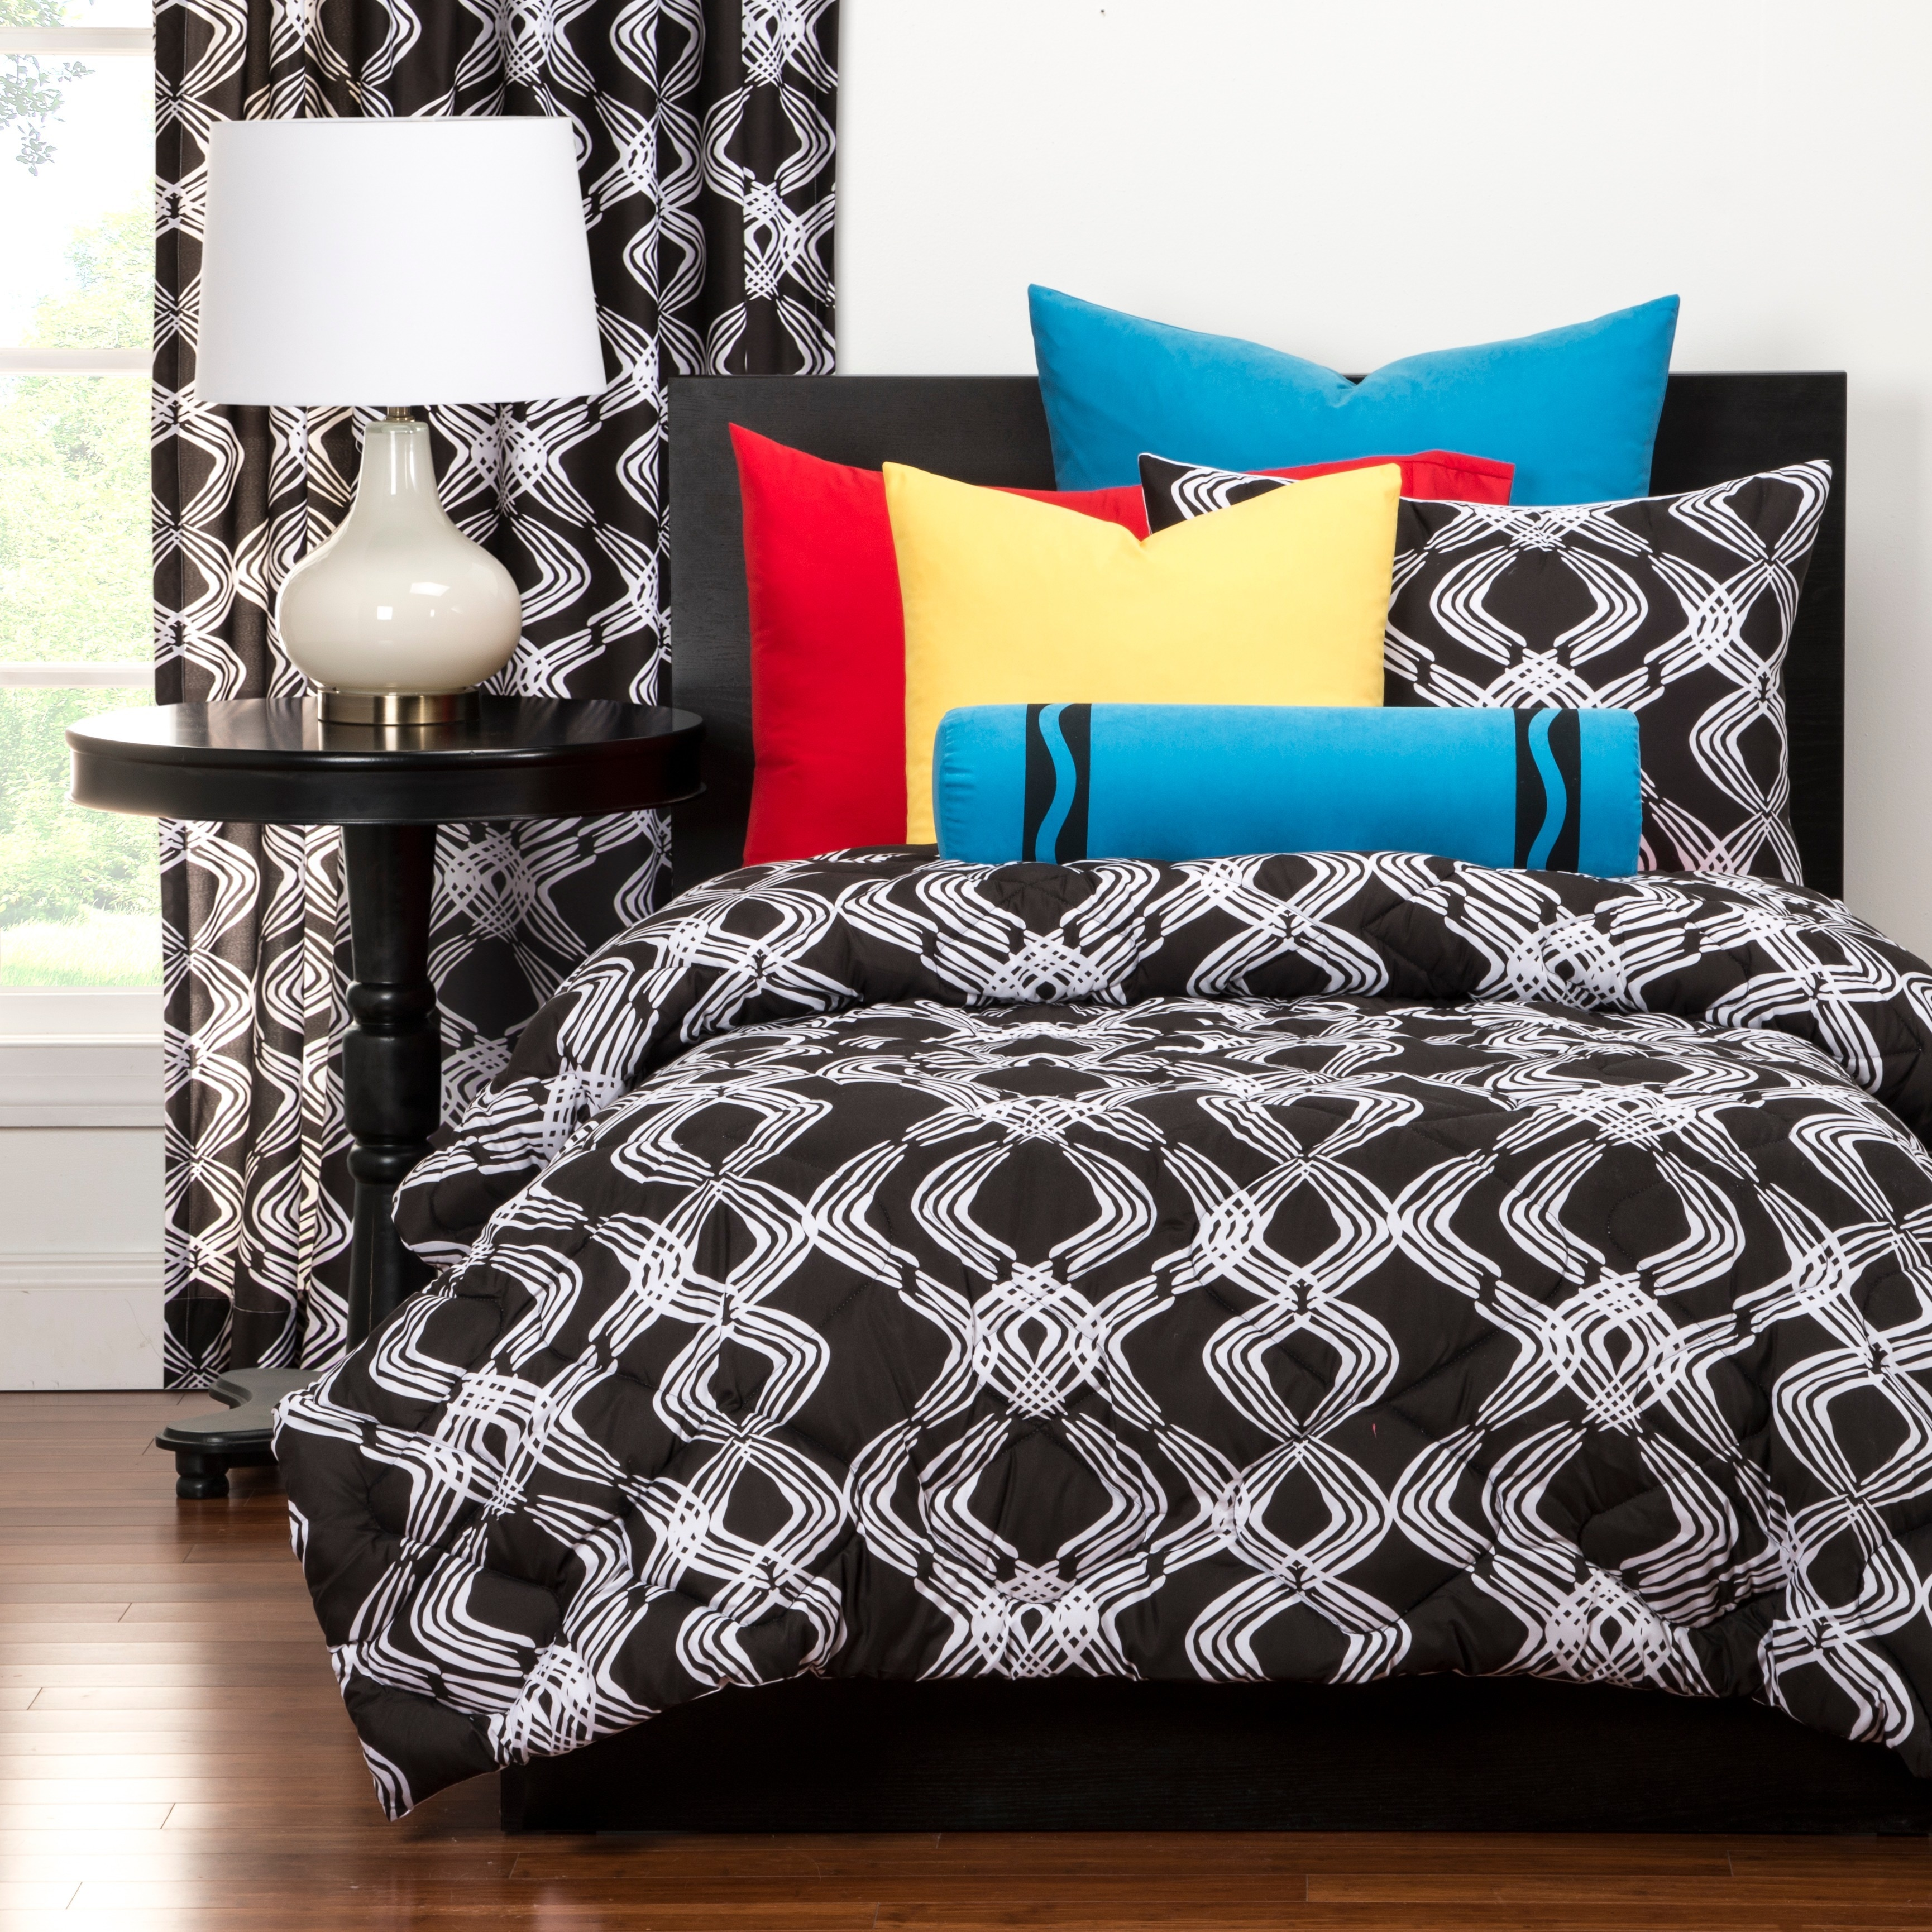 Crayola Infinity Full/Queen Comforter set